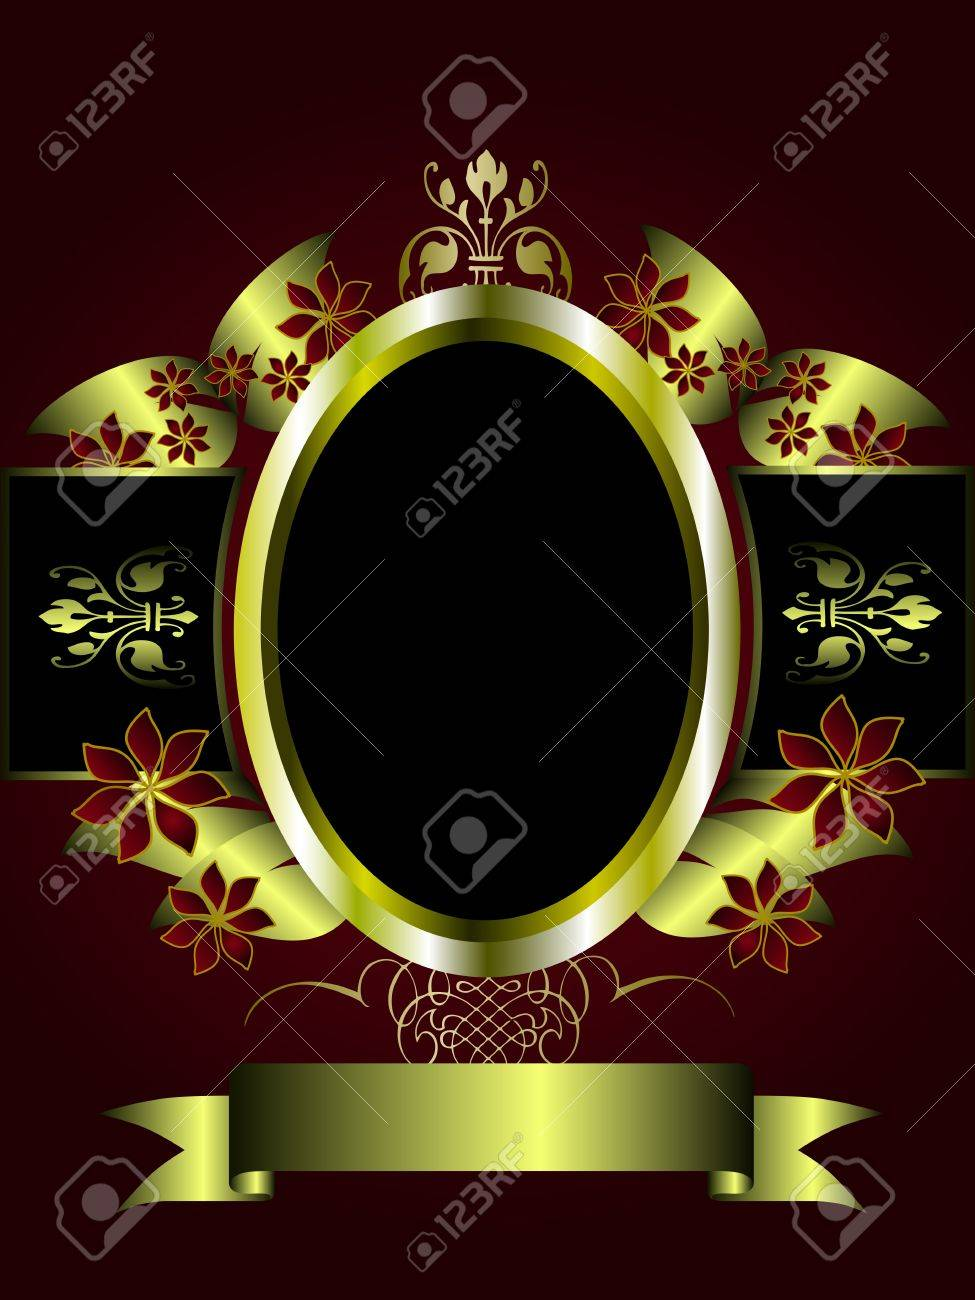 A gold floral design with room for text on a deep red  and black background Stock Vector - 8395333